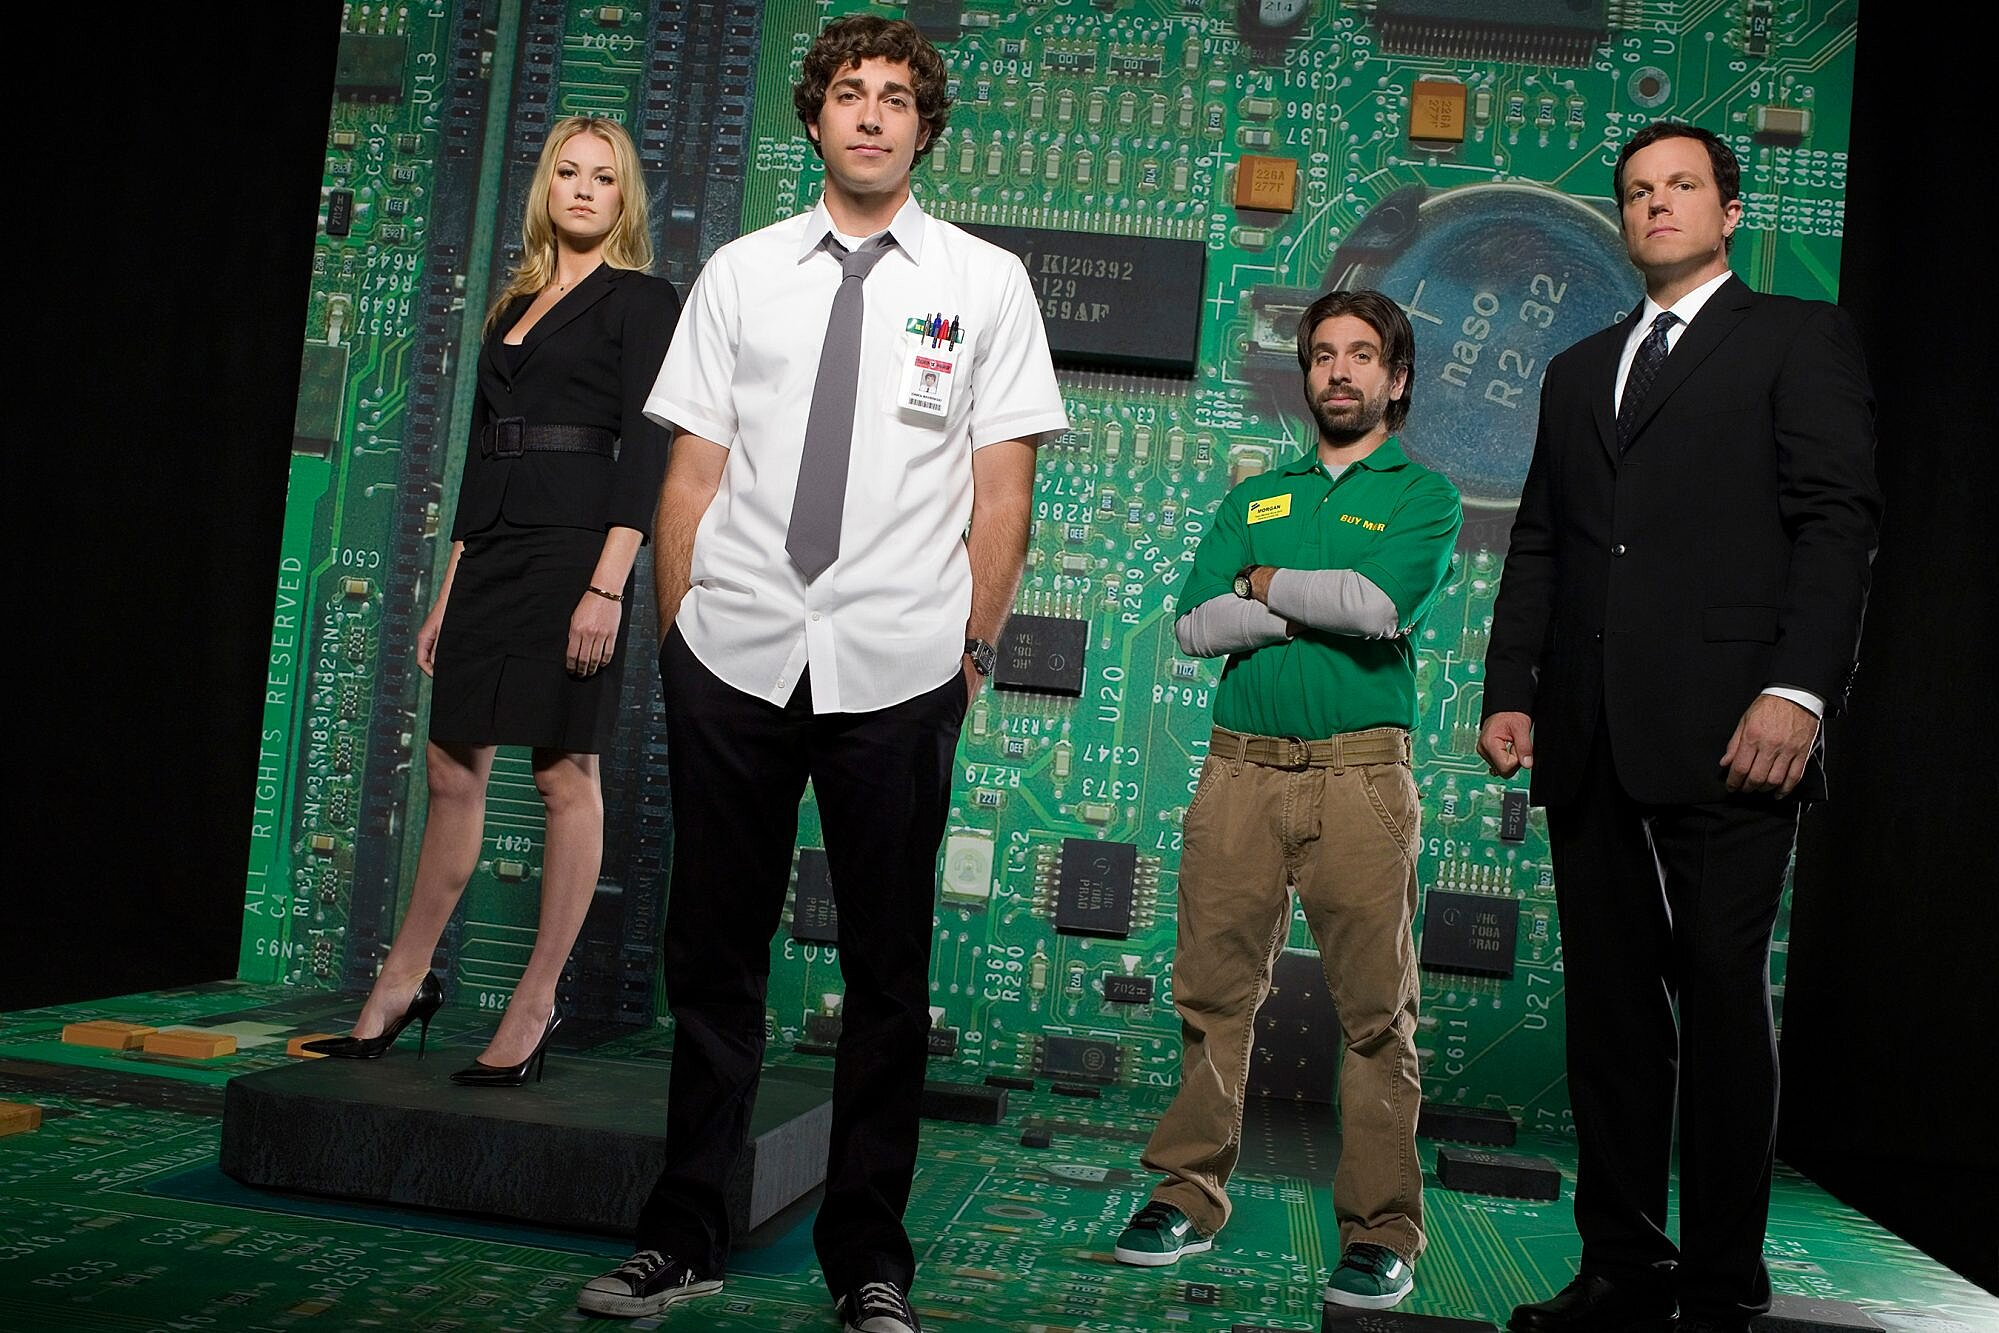 Chuck Turns 10 Why Zachary Levi Won T Quit Trying To Make A Movie Happen Ew Com 1024 x 680 jpeg 81 кб. chuck turns 10 why zachary levi won t